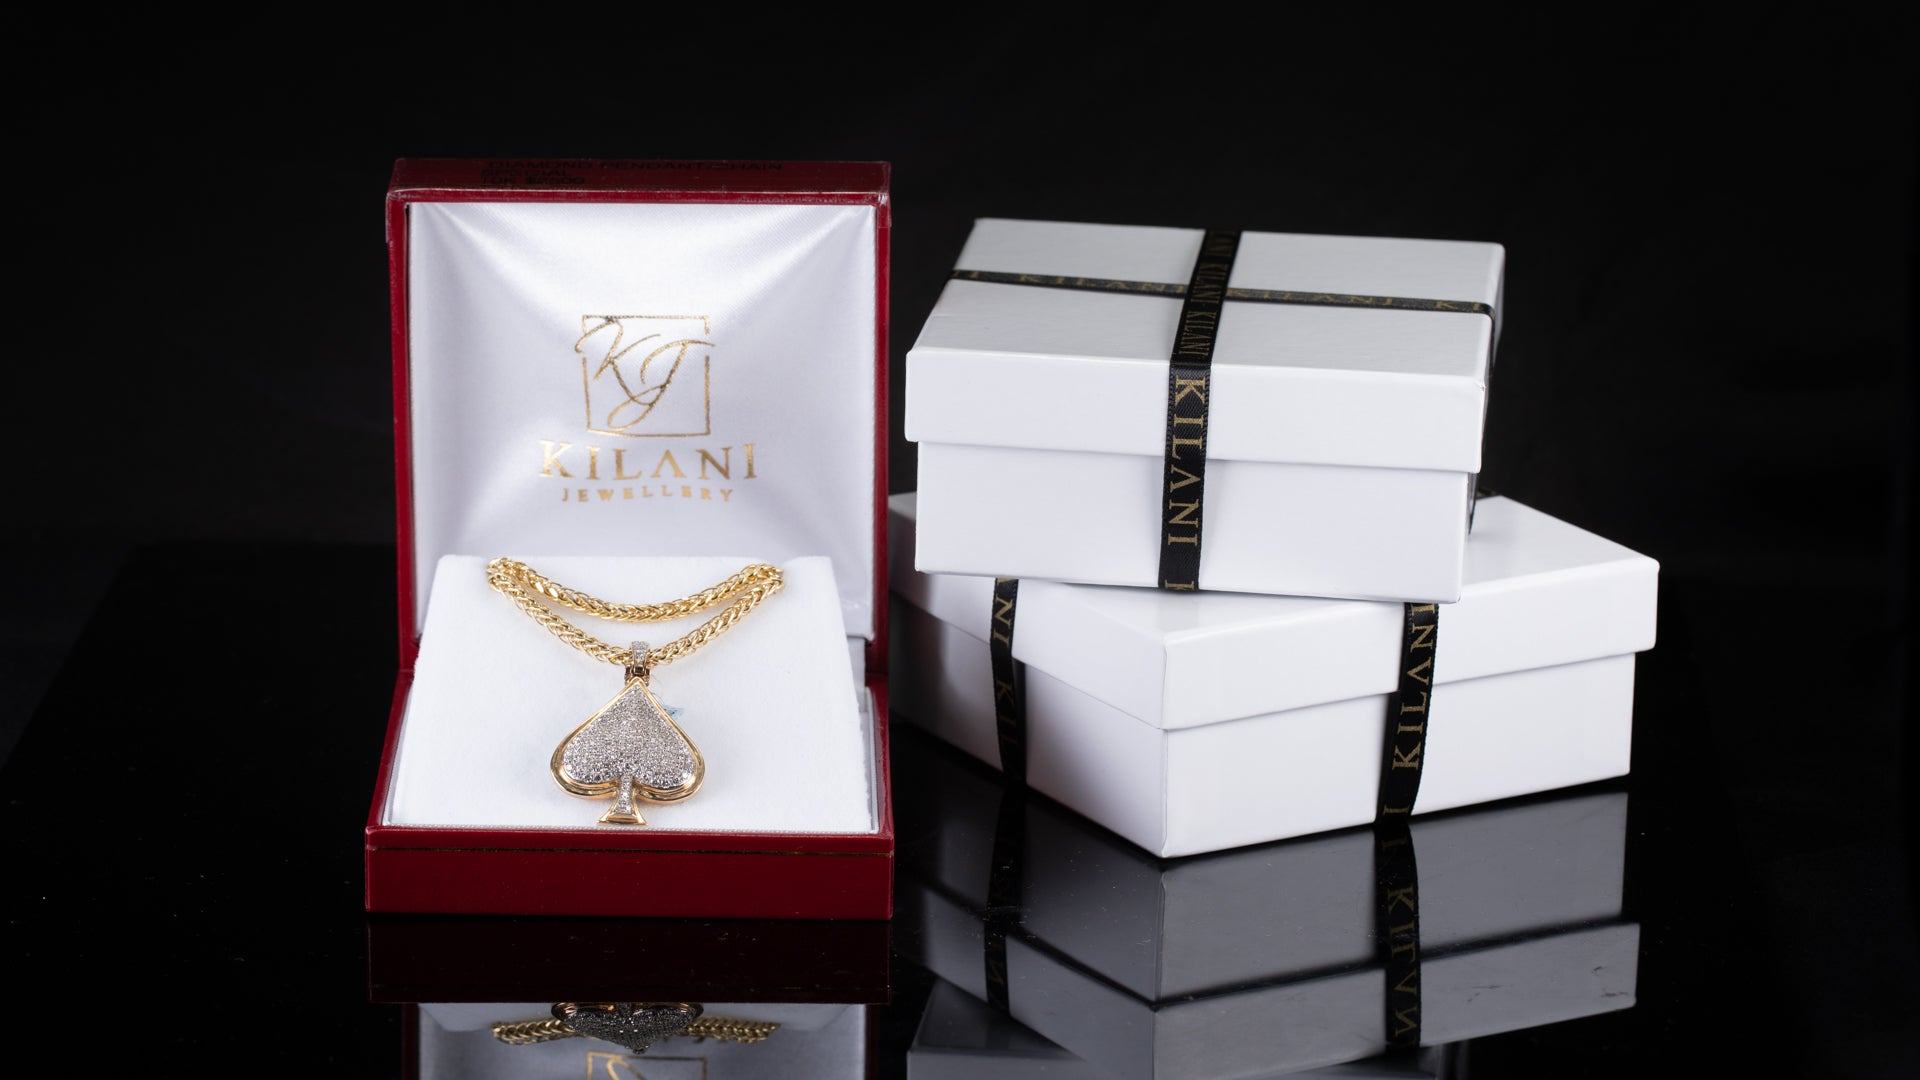 [SPECIAL] 10k Yellow Gold Ace Shape Diamond Pendant & Chain